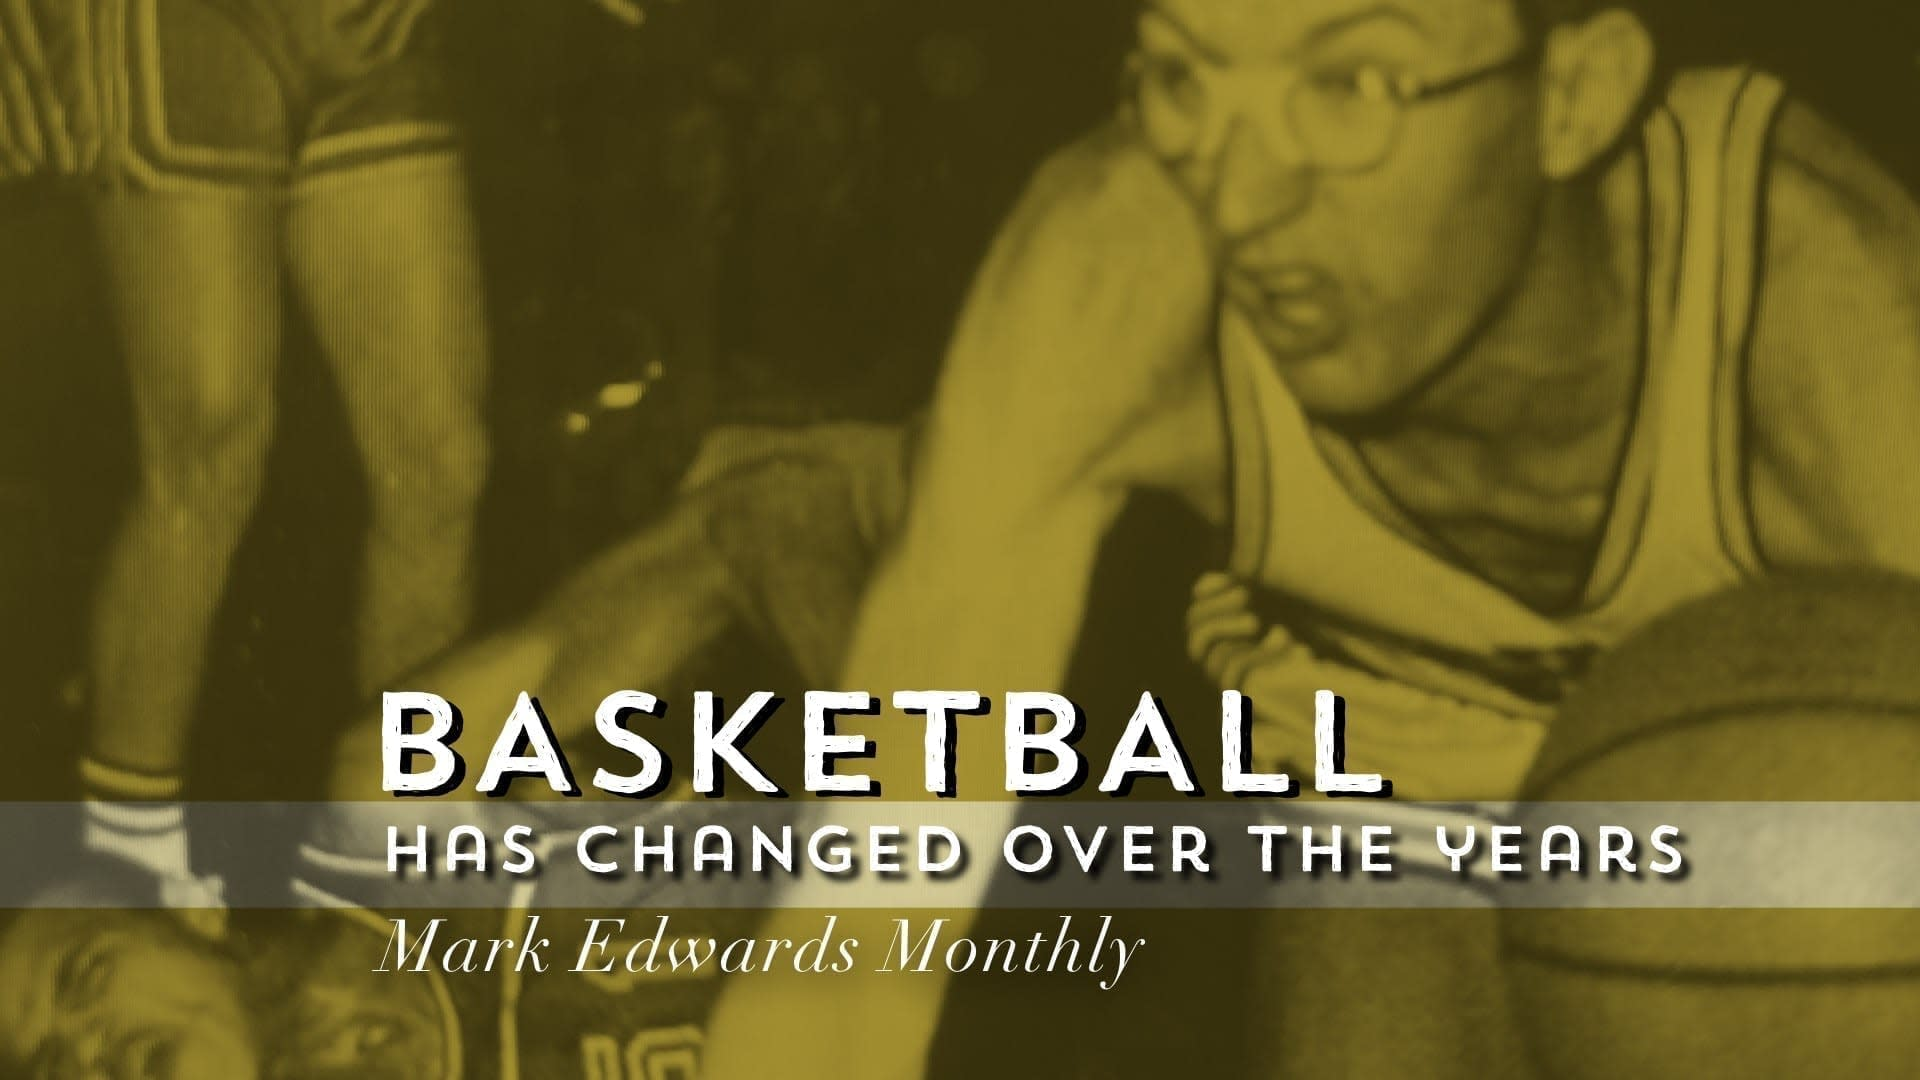 Basketball Has Changed Over the Years - Mark Edwards Monthly